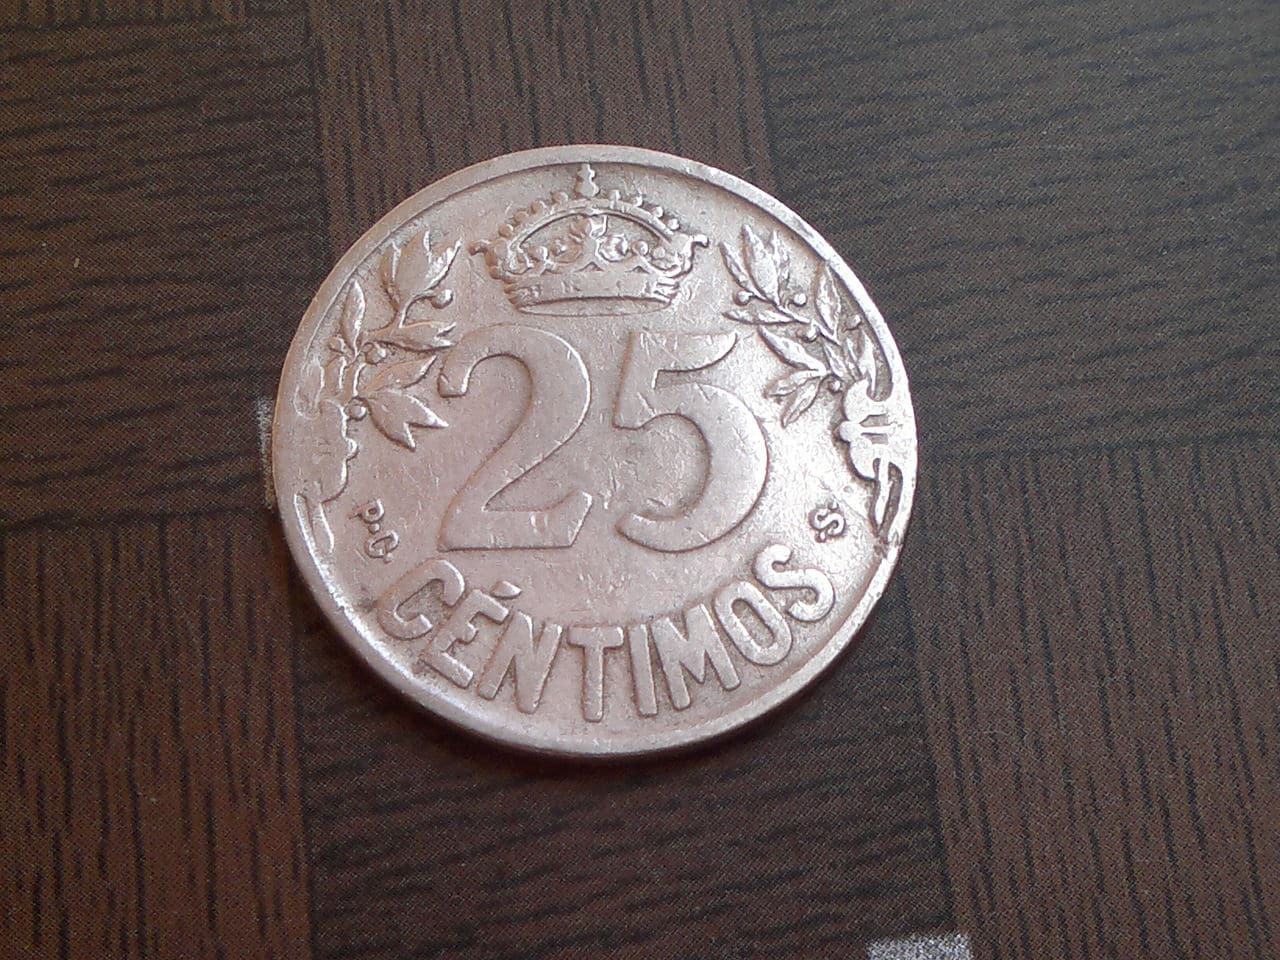 25 ctms alfonso XIII 1925 2014_05_08_3351